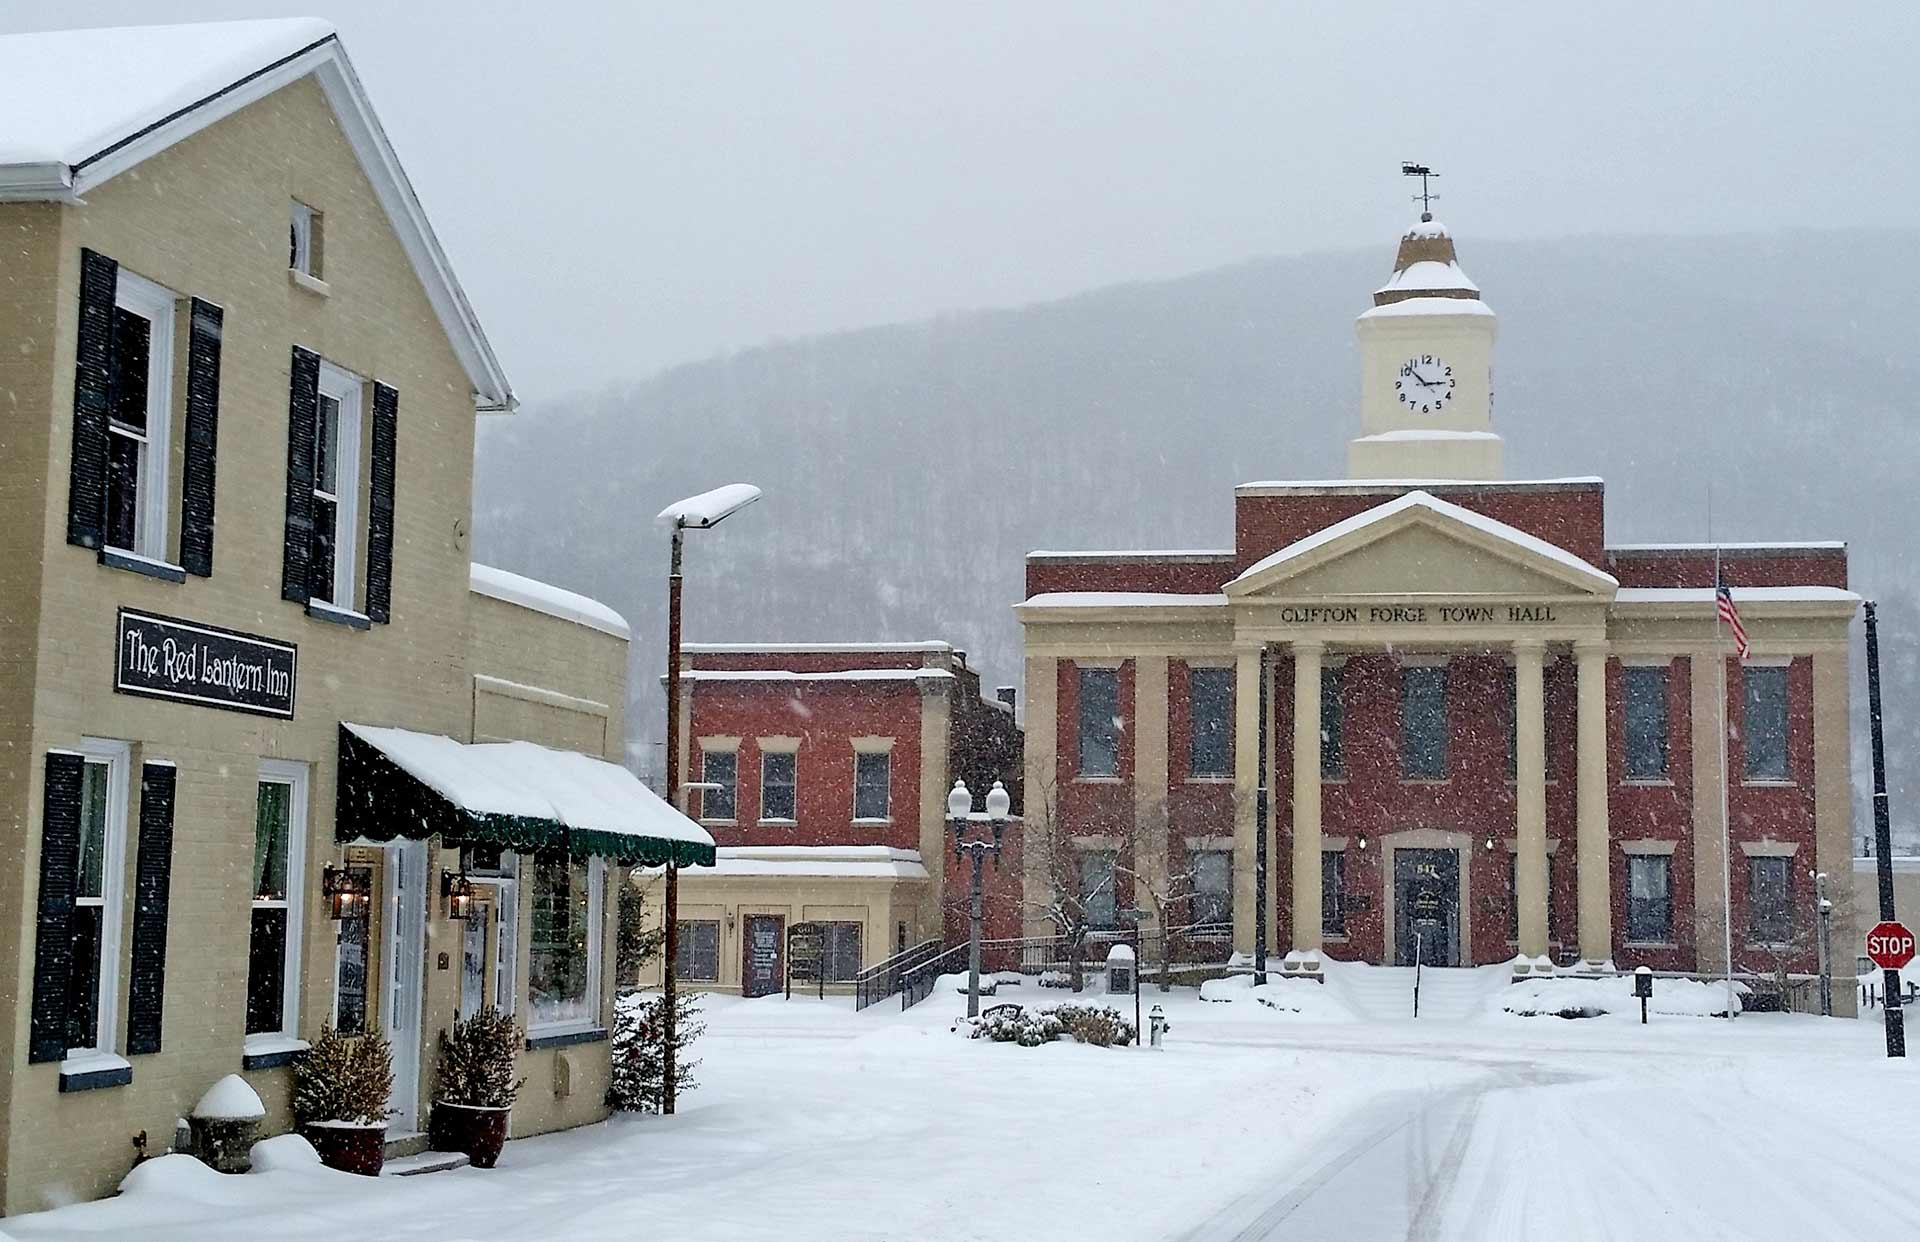 Inn And Courthouse In The Snow